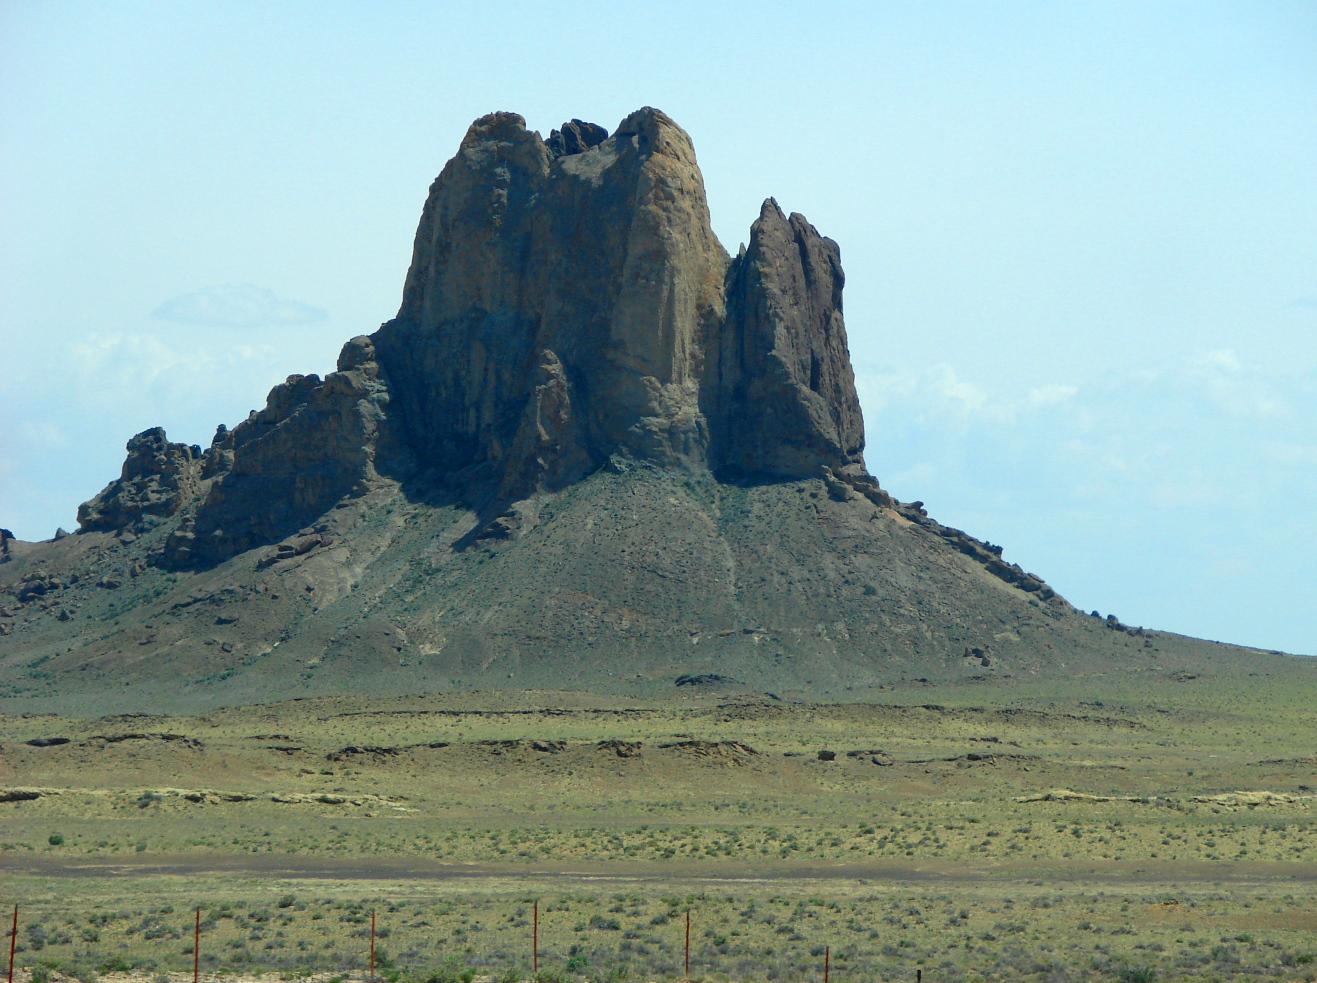 shiprock dating site Aztec ruins national monument, near farmington, new mexico - well preserved ancient dwellings containing almost 400 rooms on 3 levels, dating from the 12th century.